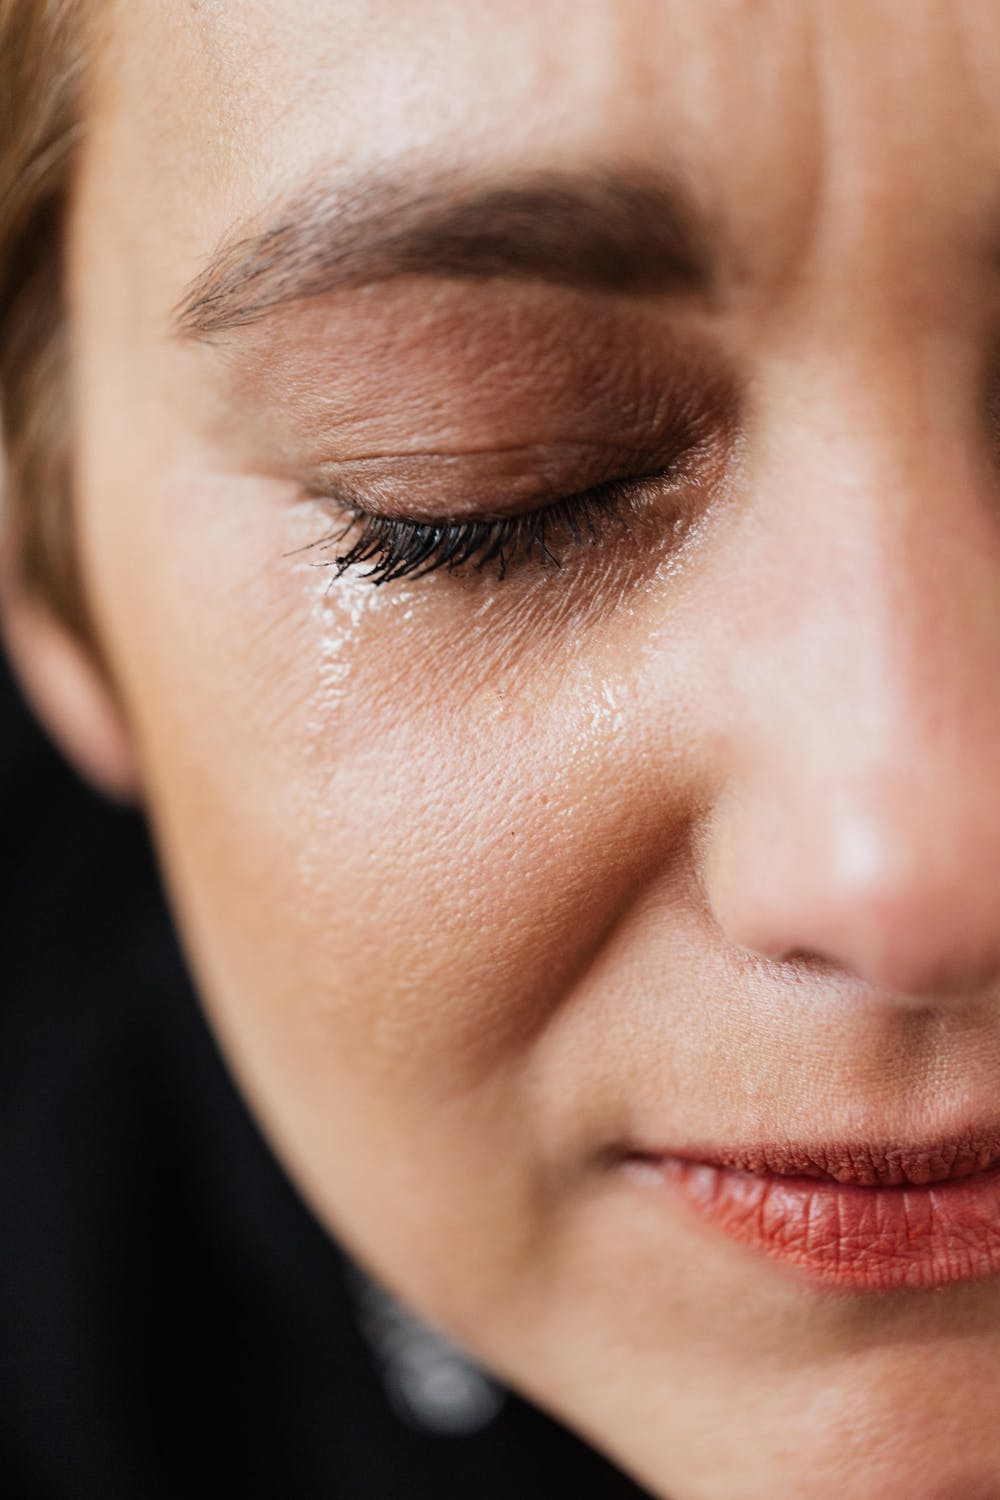 Woman crying | Source: Pexels